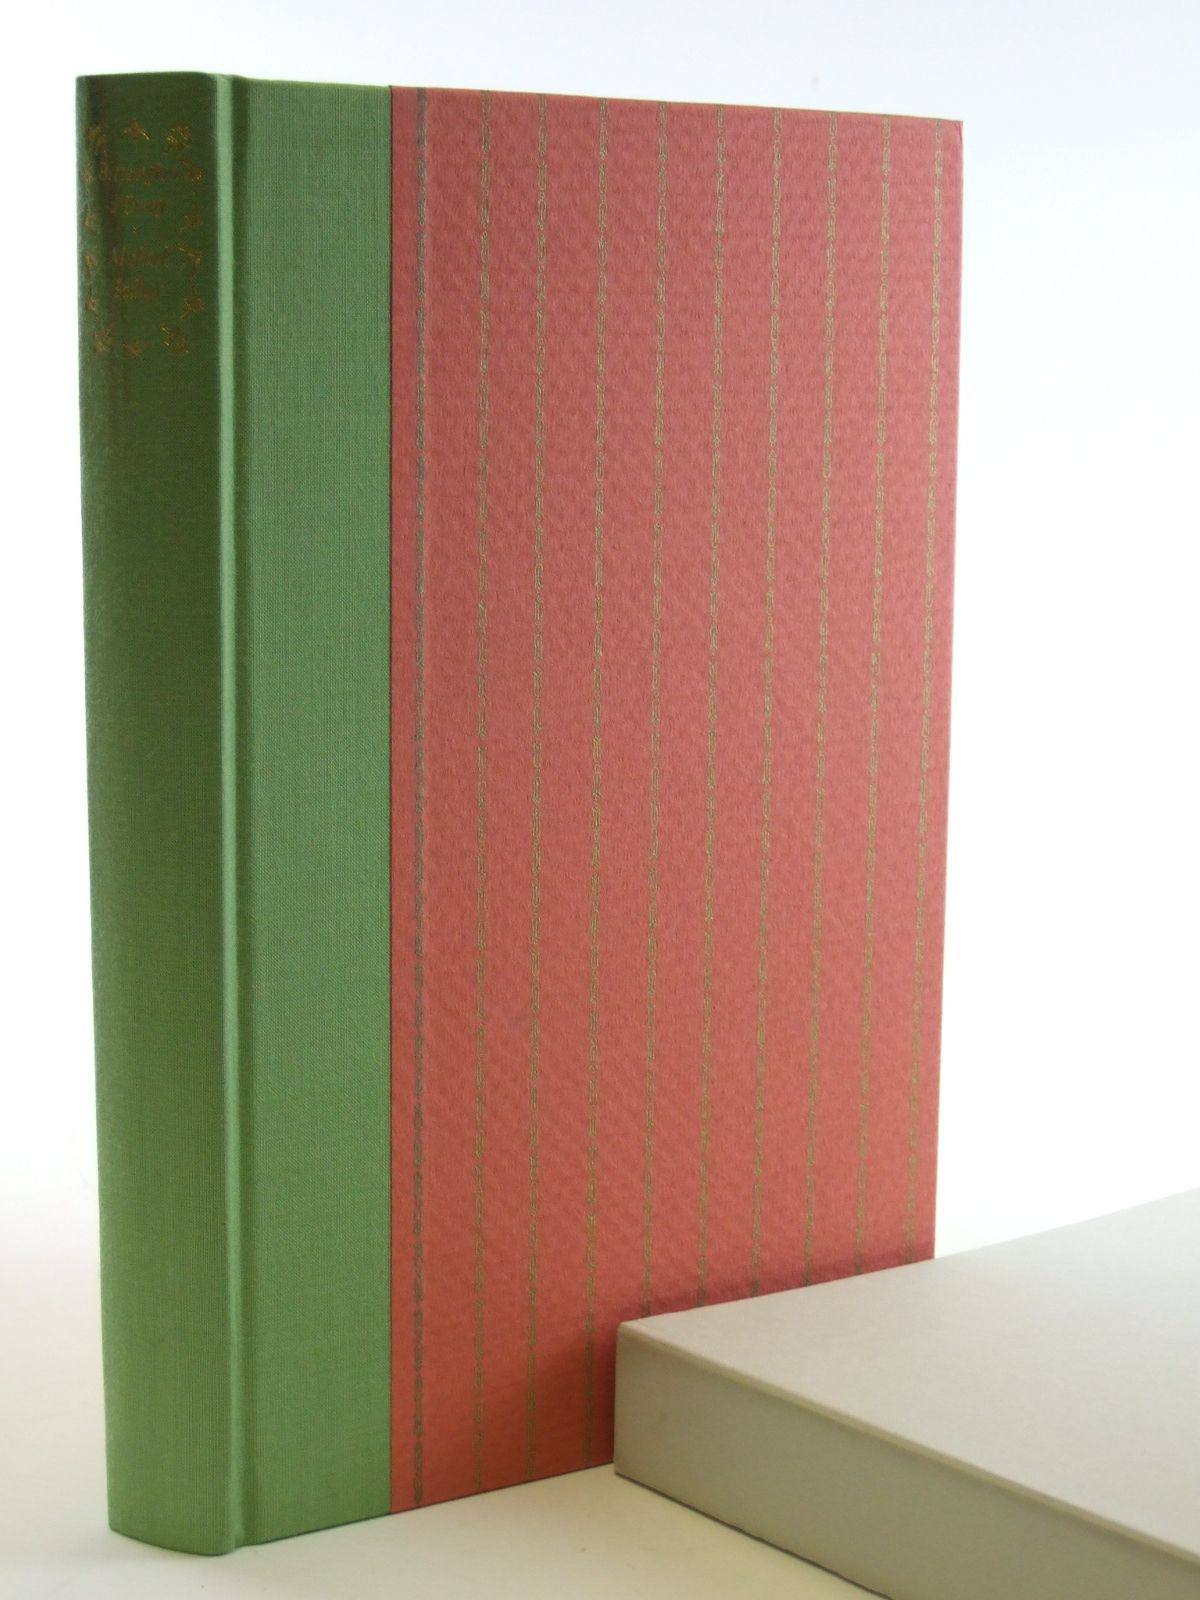 Photo of BLESSINGTON-D'ORSAY: A MASQUERADE written by Sadleir, Michael published by Folio Society (STOCK CODE: 1602599)  for sale by Stella & Rose's Books